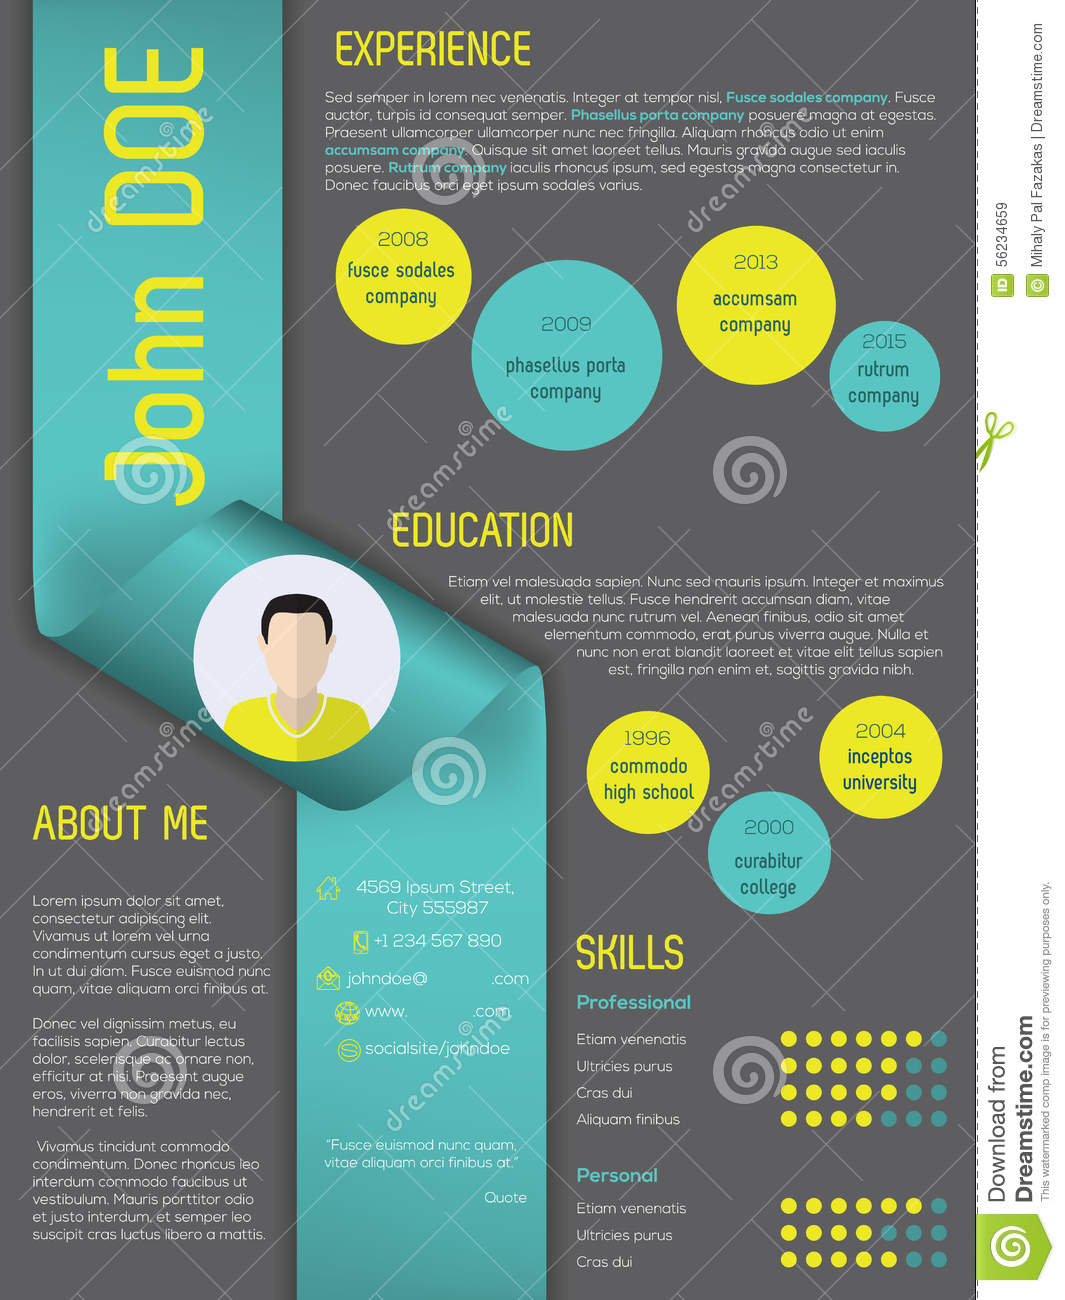 Curriculum vitae design francais for Design francais